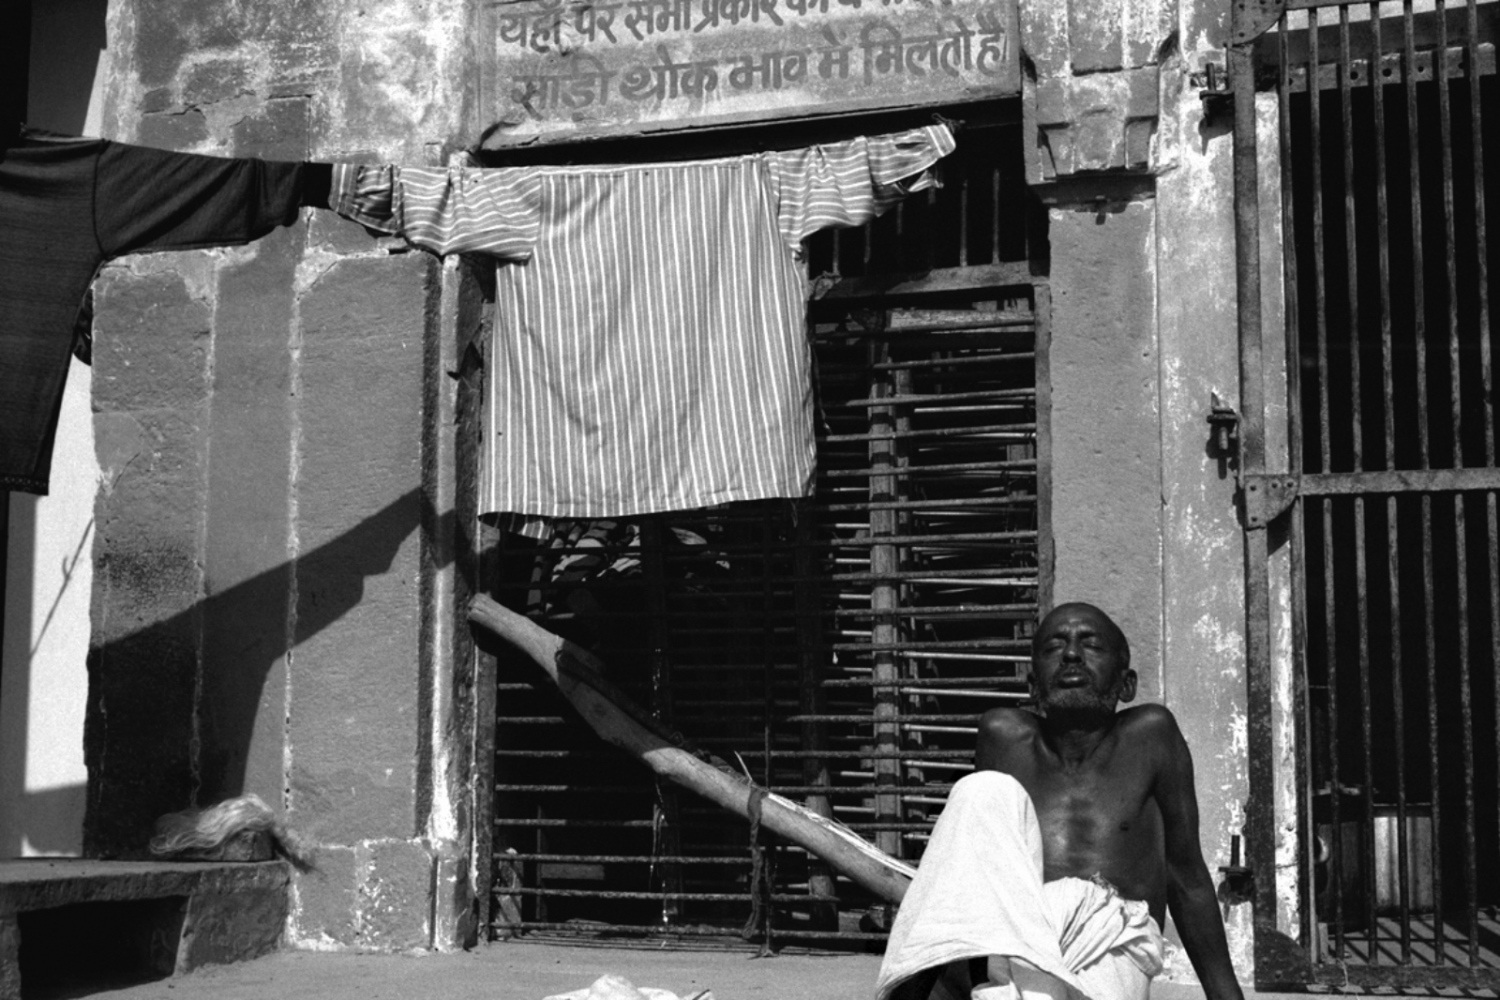 Man and Shirt, Varanasi, India, November 2003